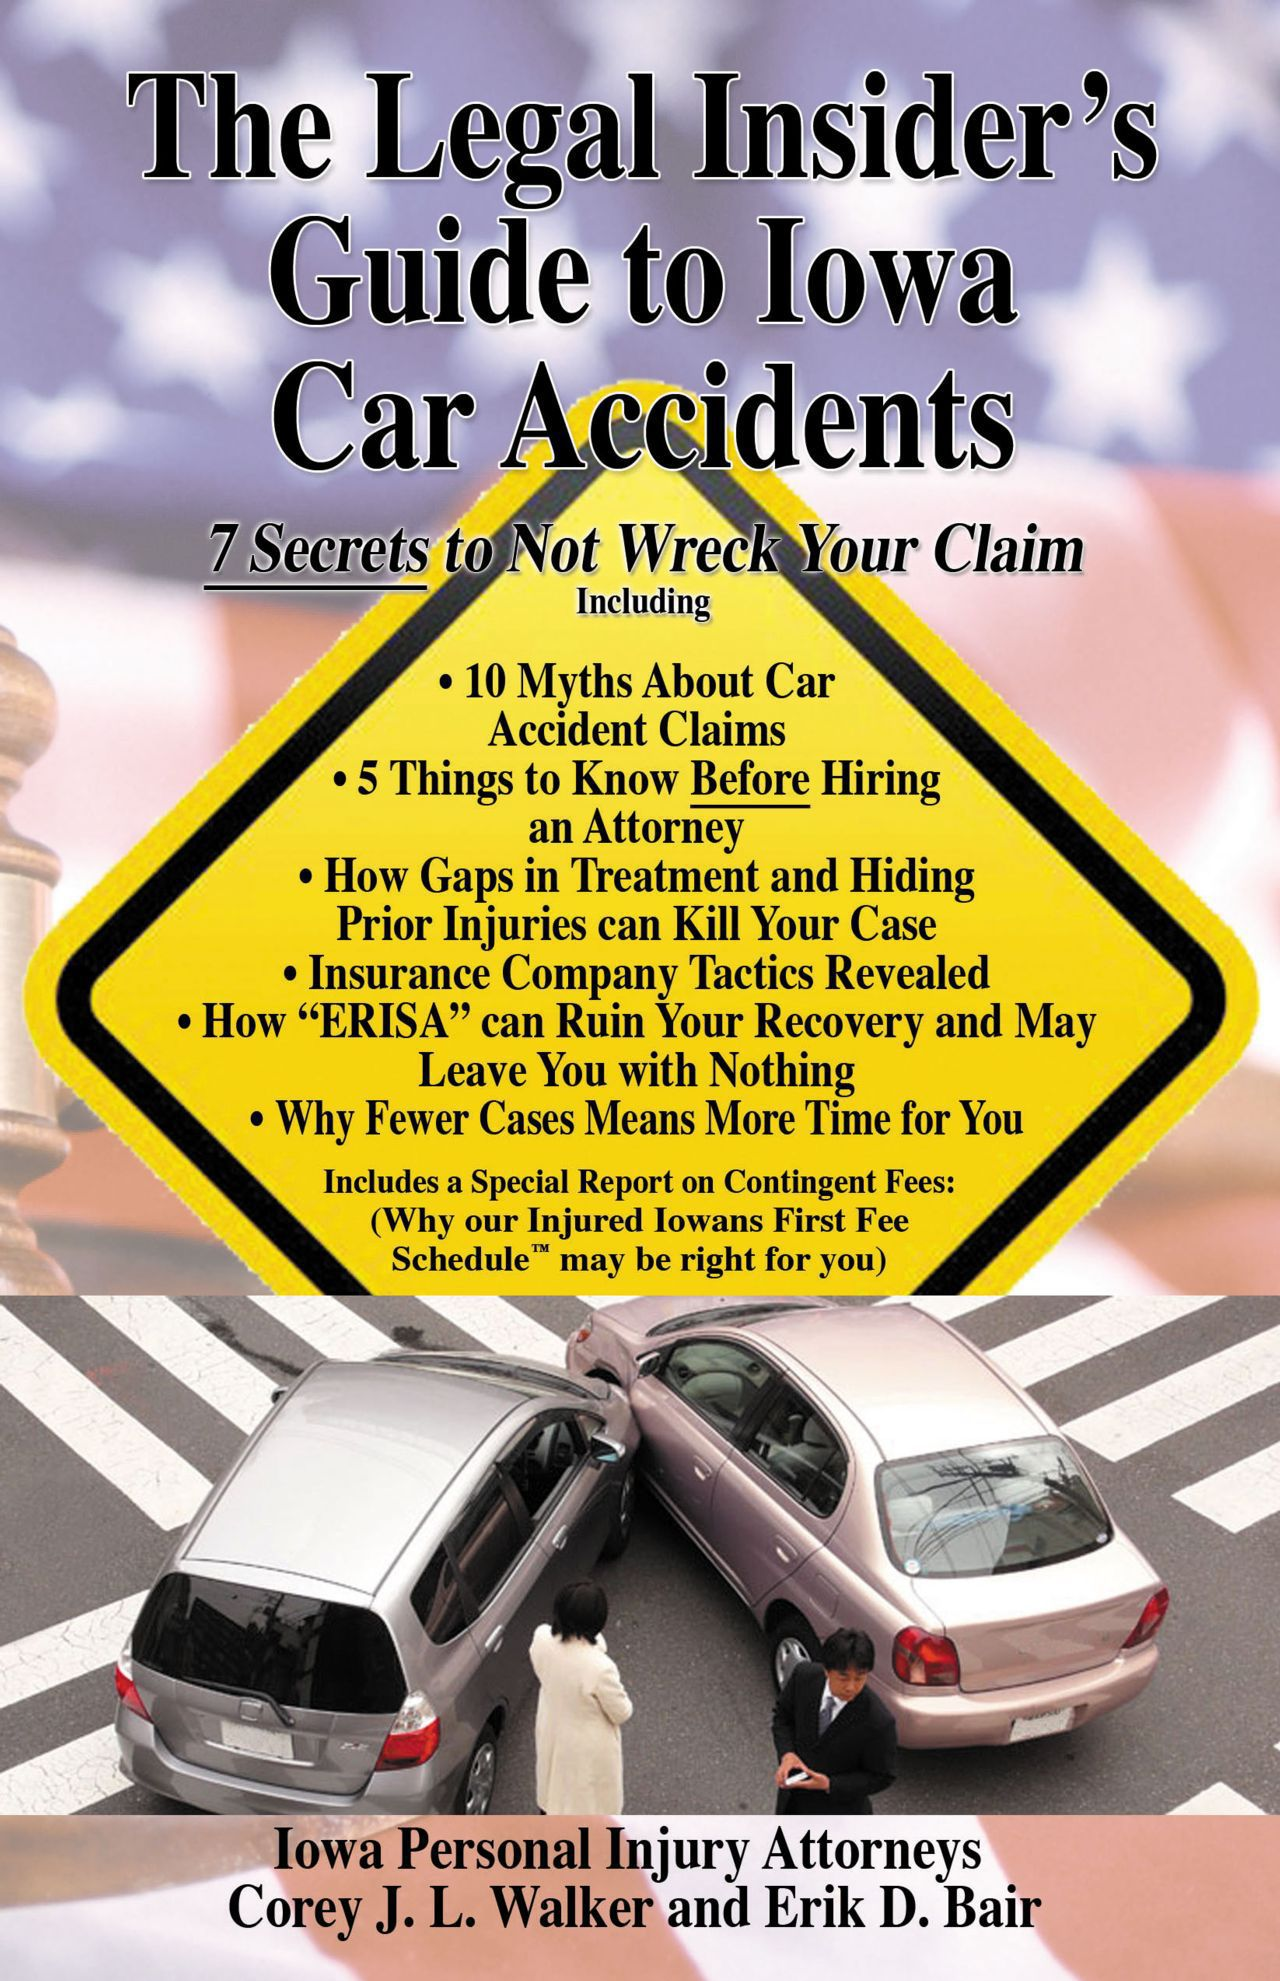 The legal insider's guide to iowa car accidents book